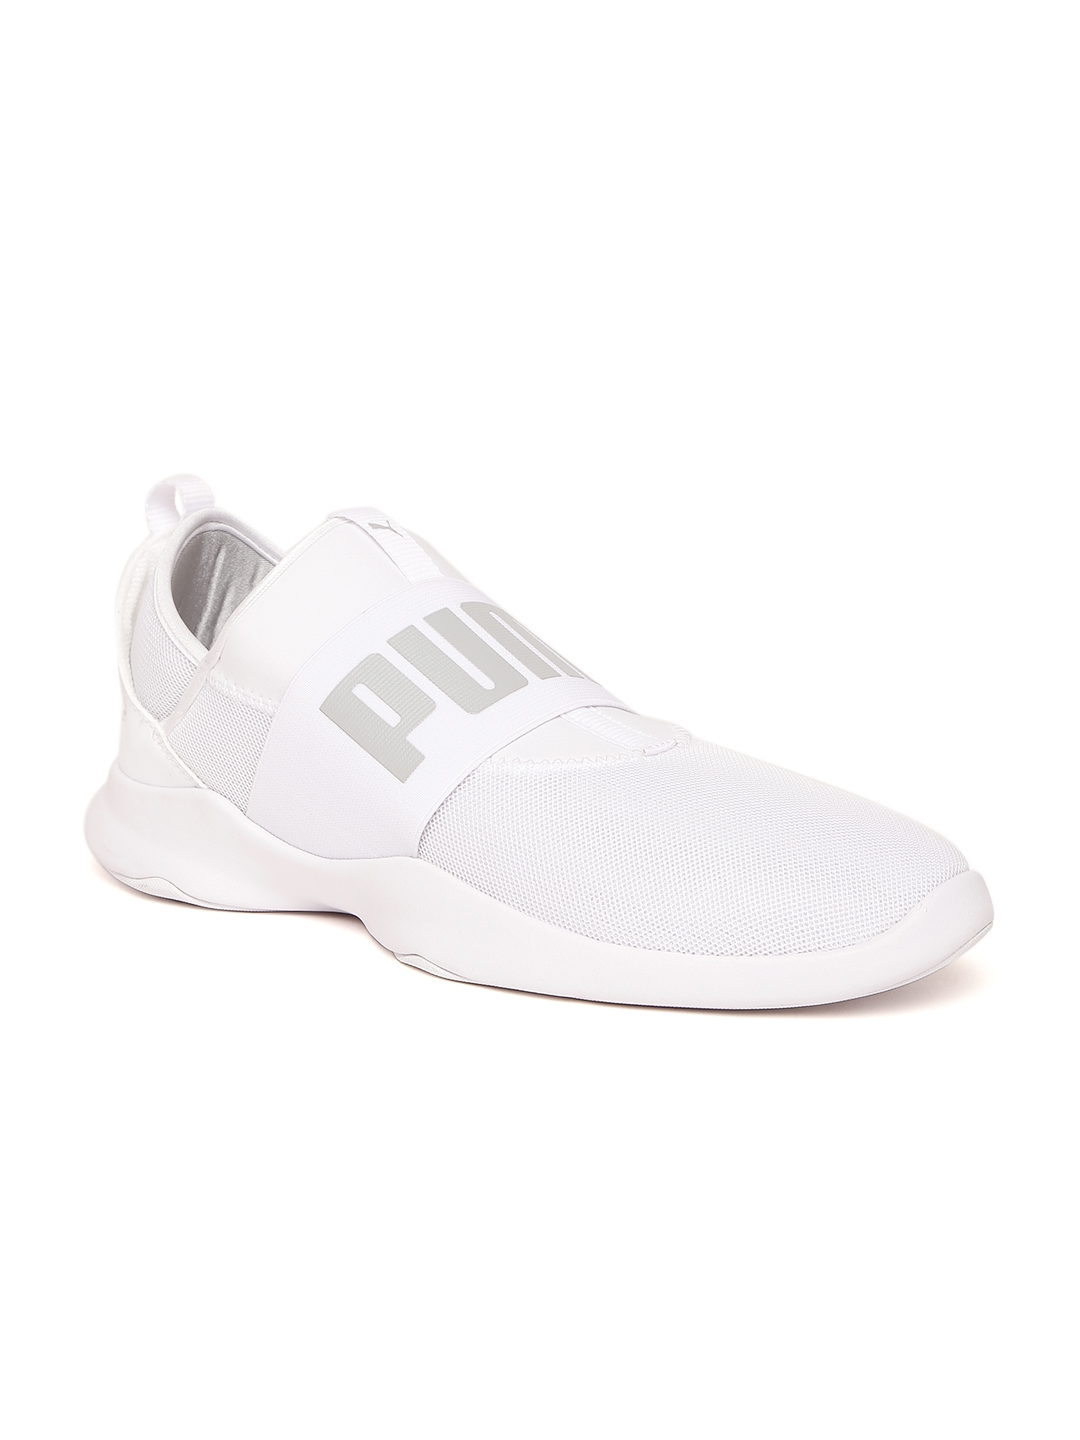 0fec99632313 Buy Puma Unisex White Dare Slip On Sneakers - Casual Shoes for ...